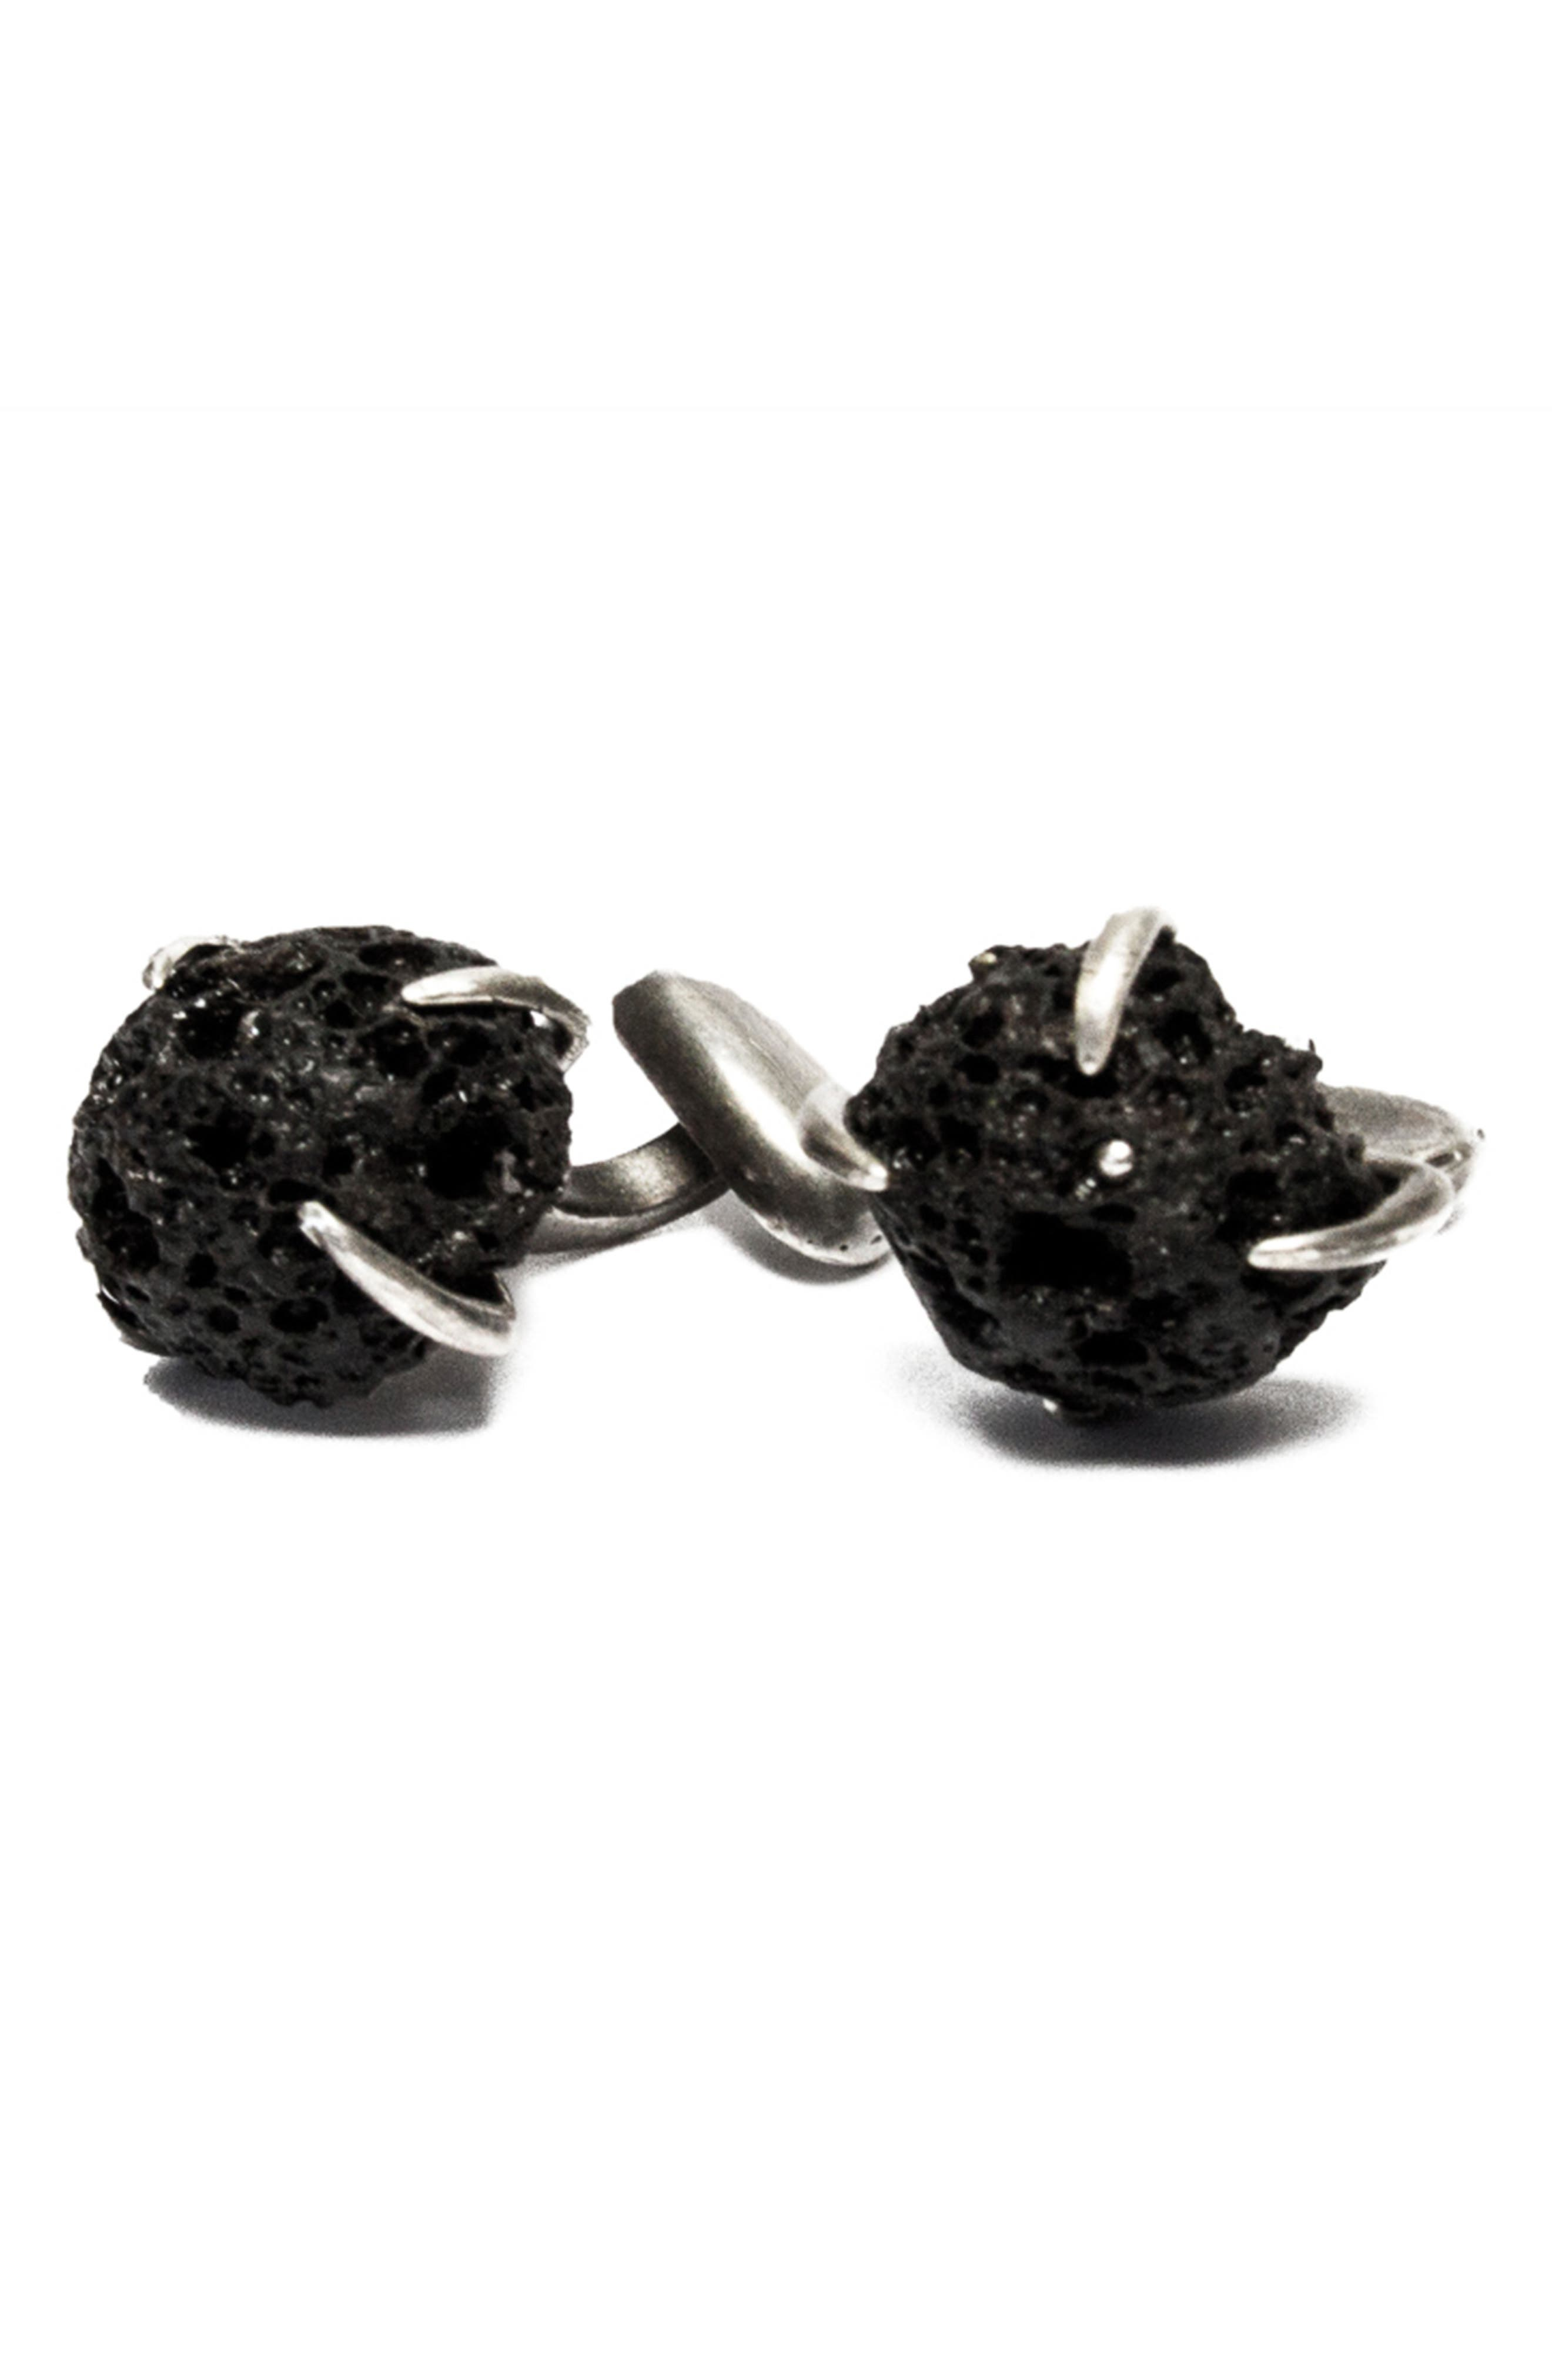 Volcanic Stones Cuff Links,                             Main thumbnail 1, color,                             001